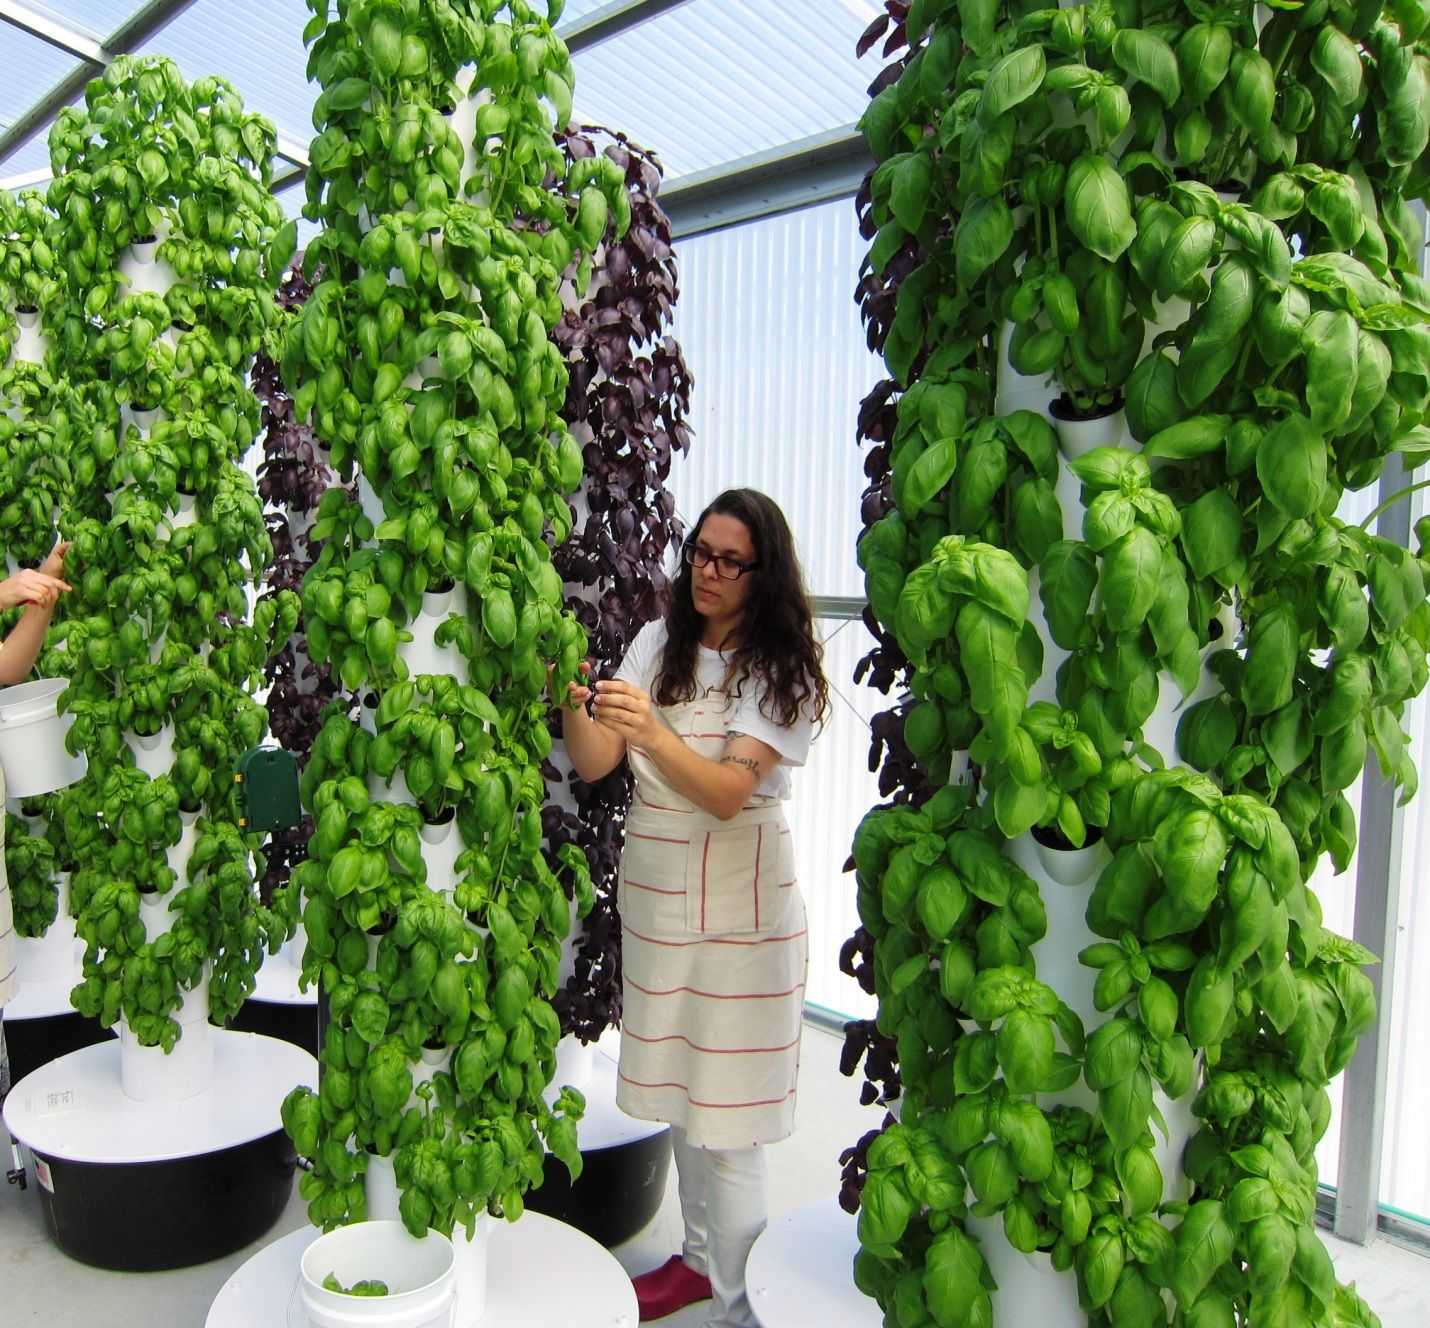 1000 images about Aeroponics on Pinterest Gardens Buckets and